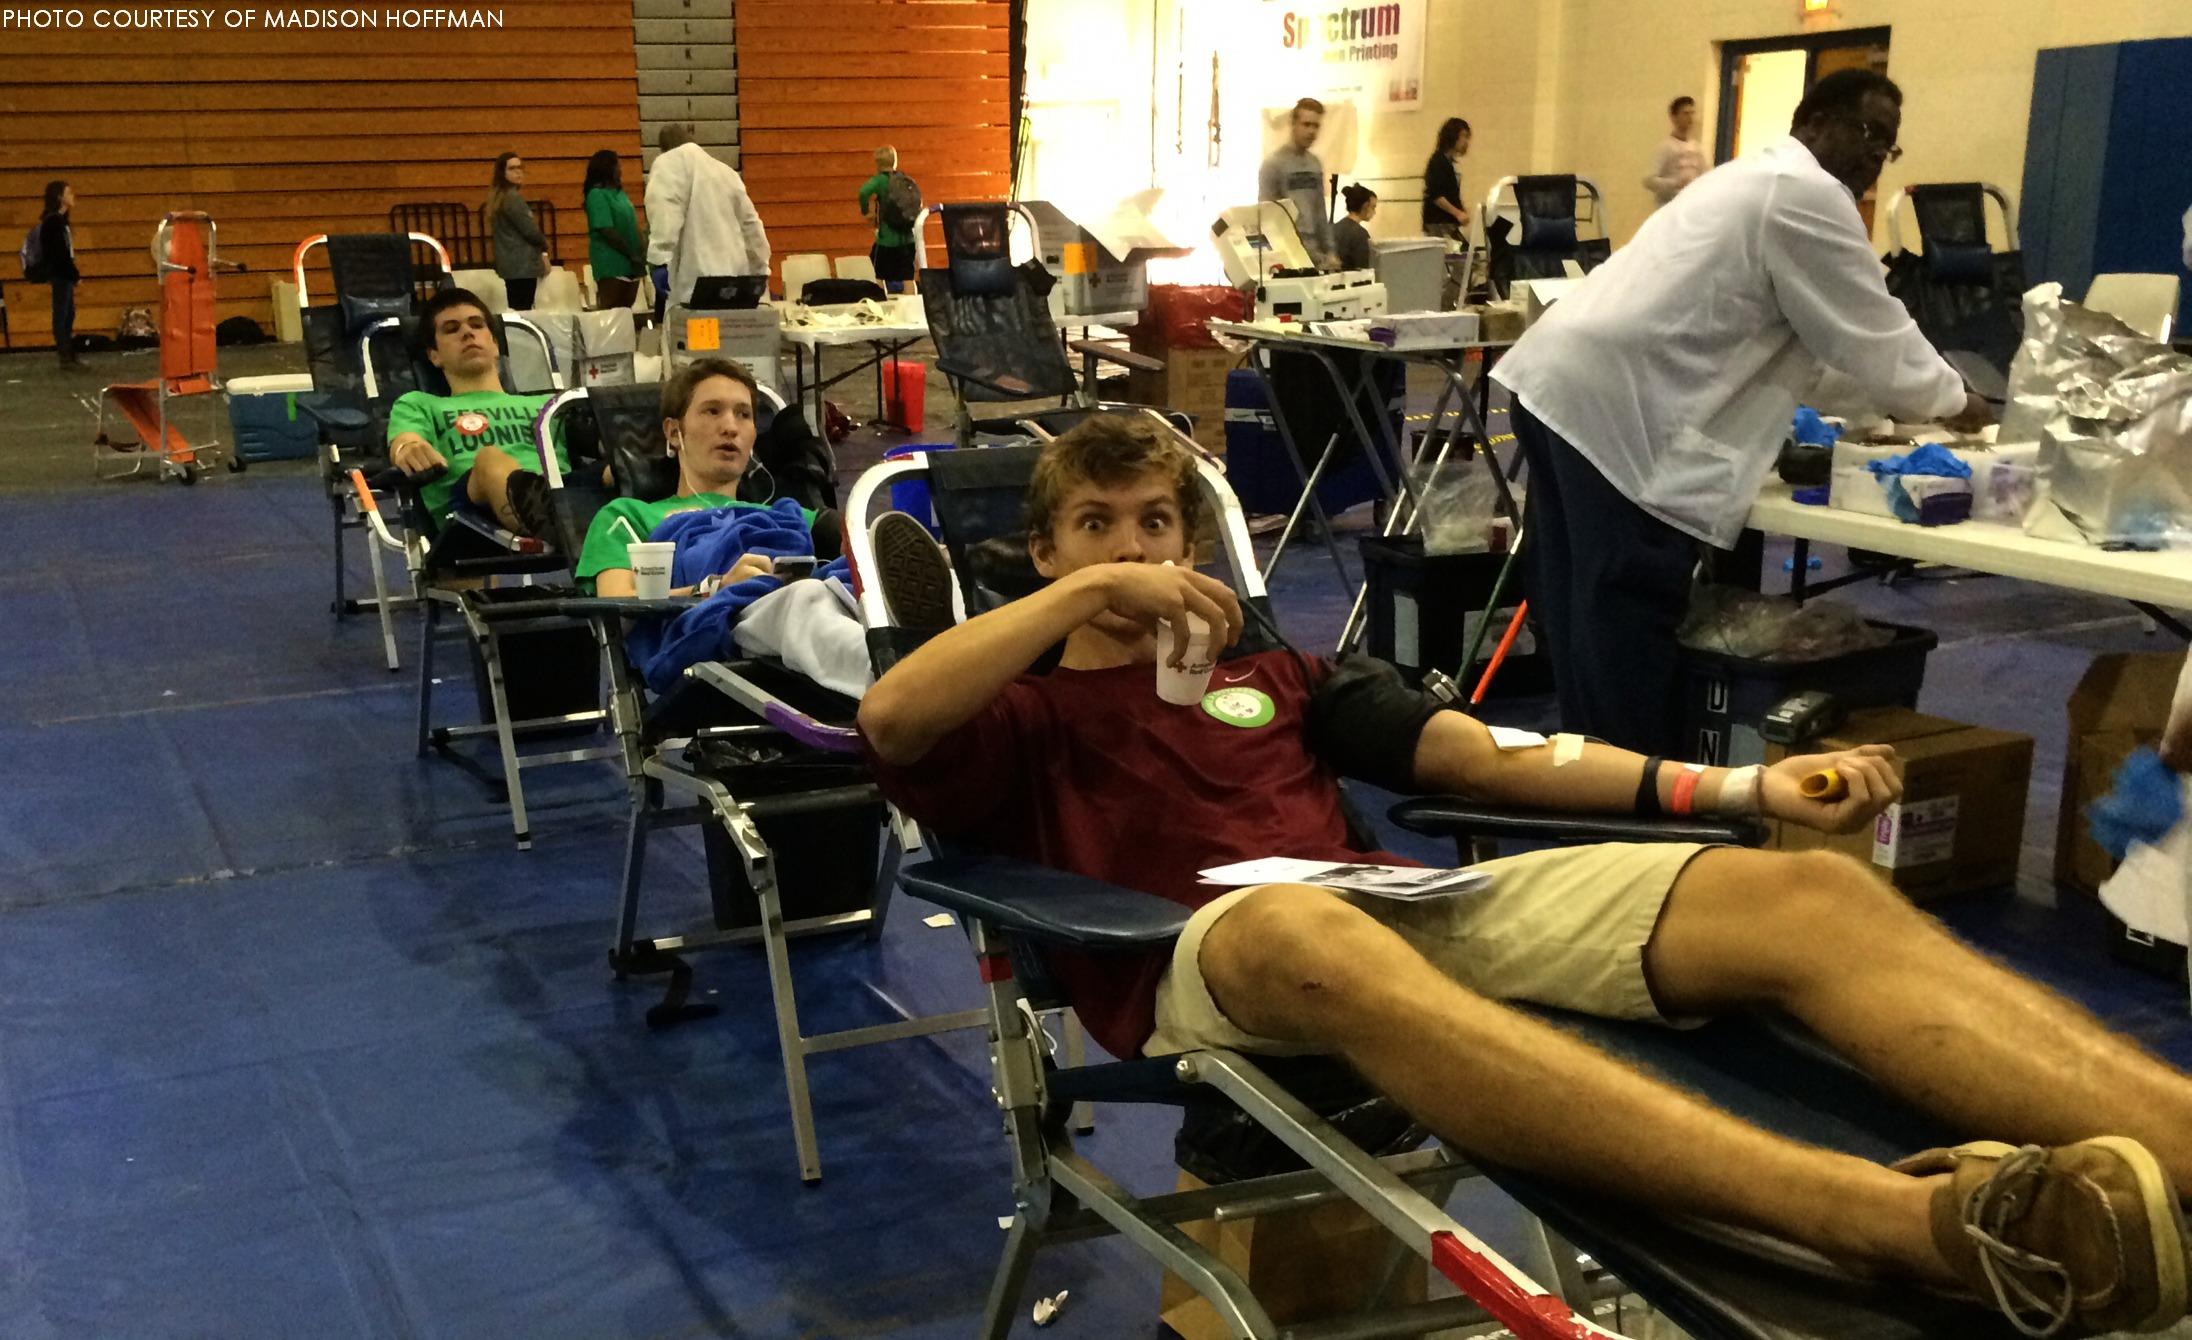 Joe Talbert, Ethan Cornelius and Clay Boneham sitting in their cots as they begin the process of giving blood to the American Red Cross.